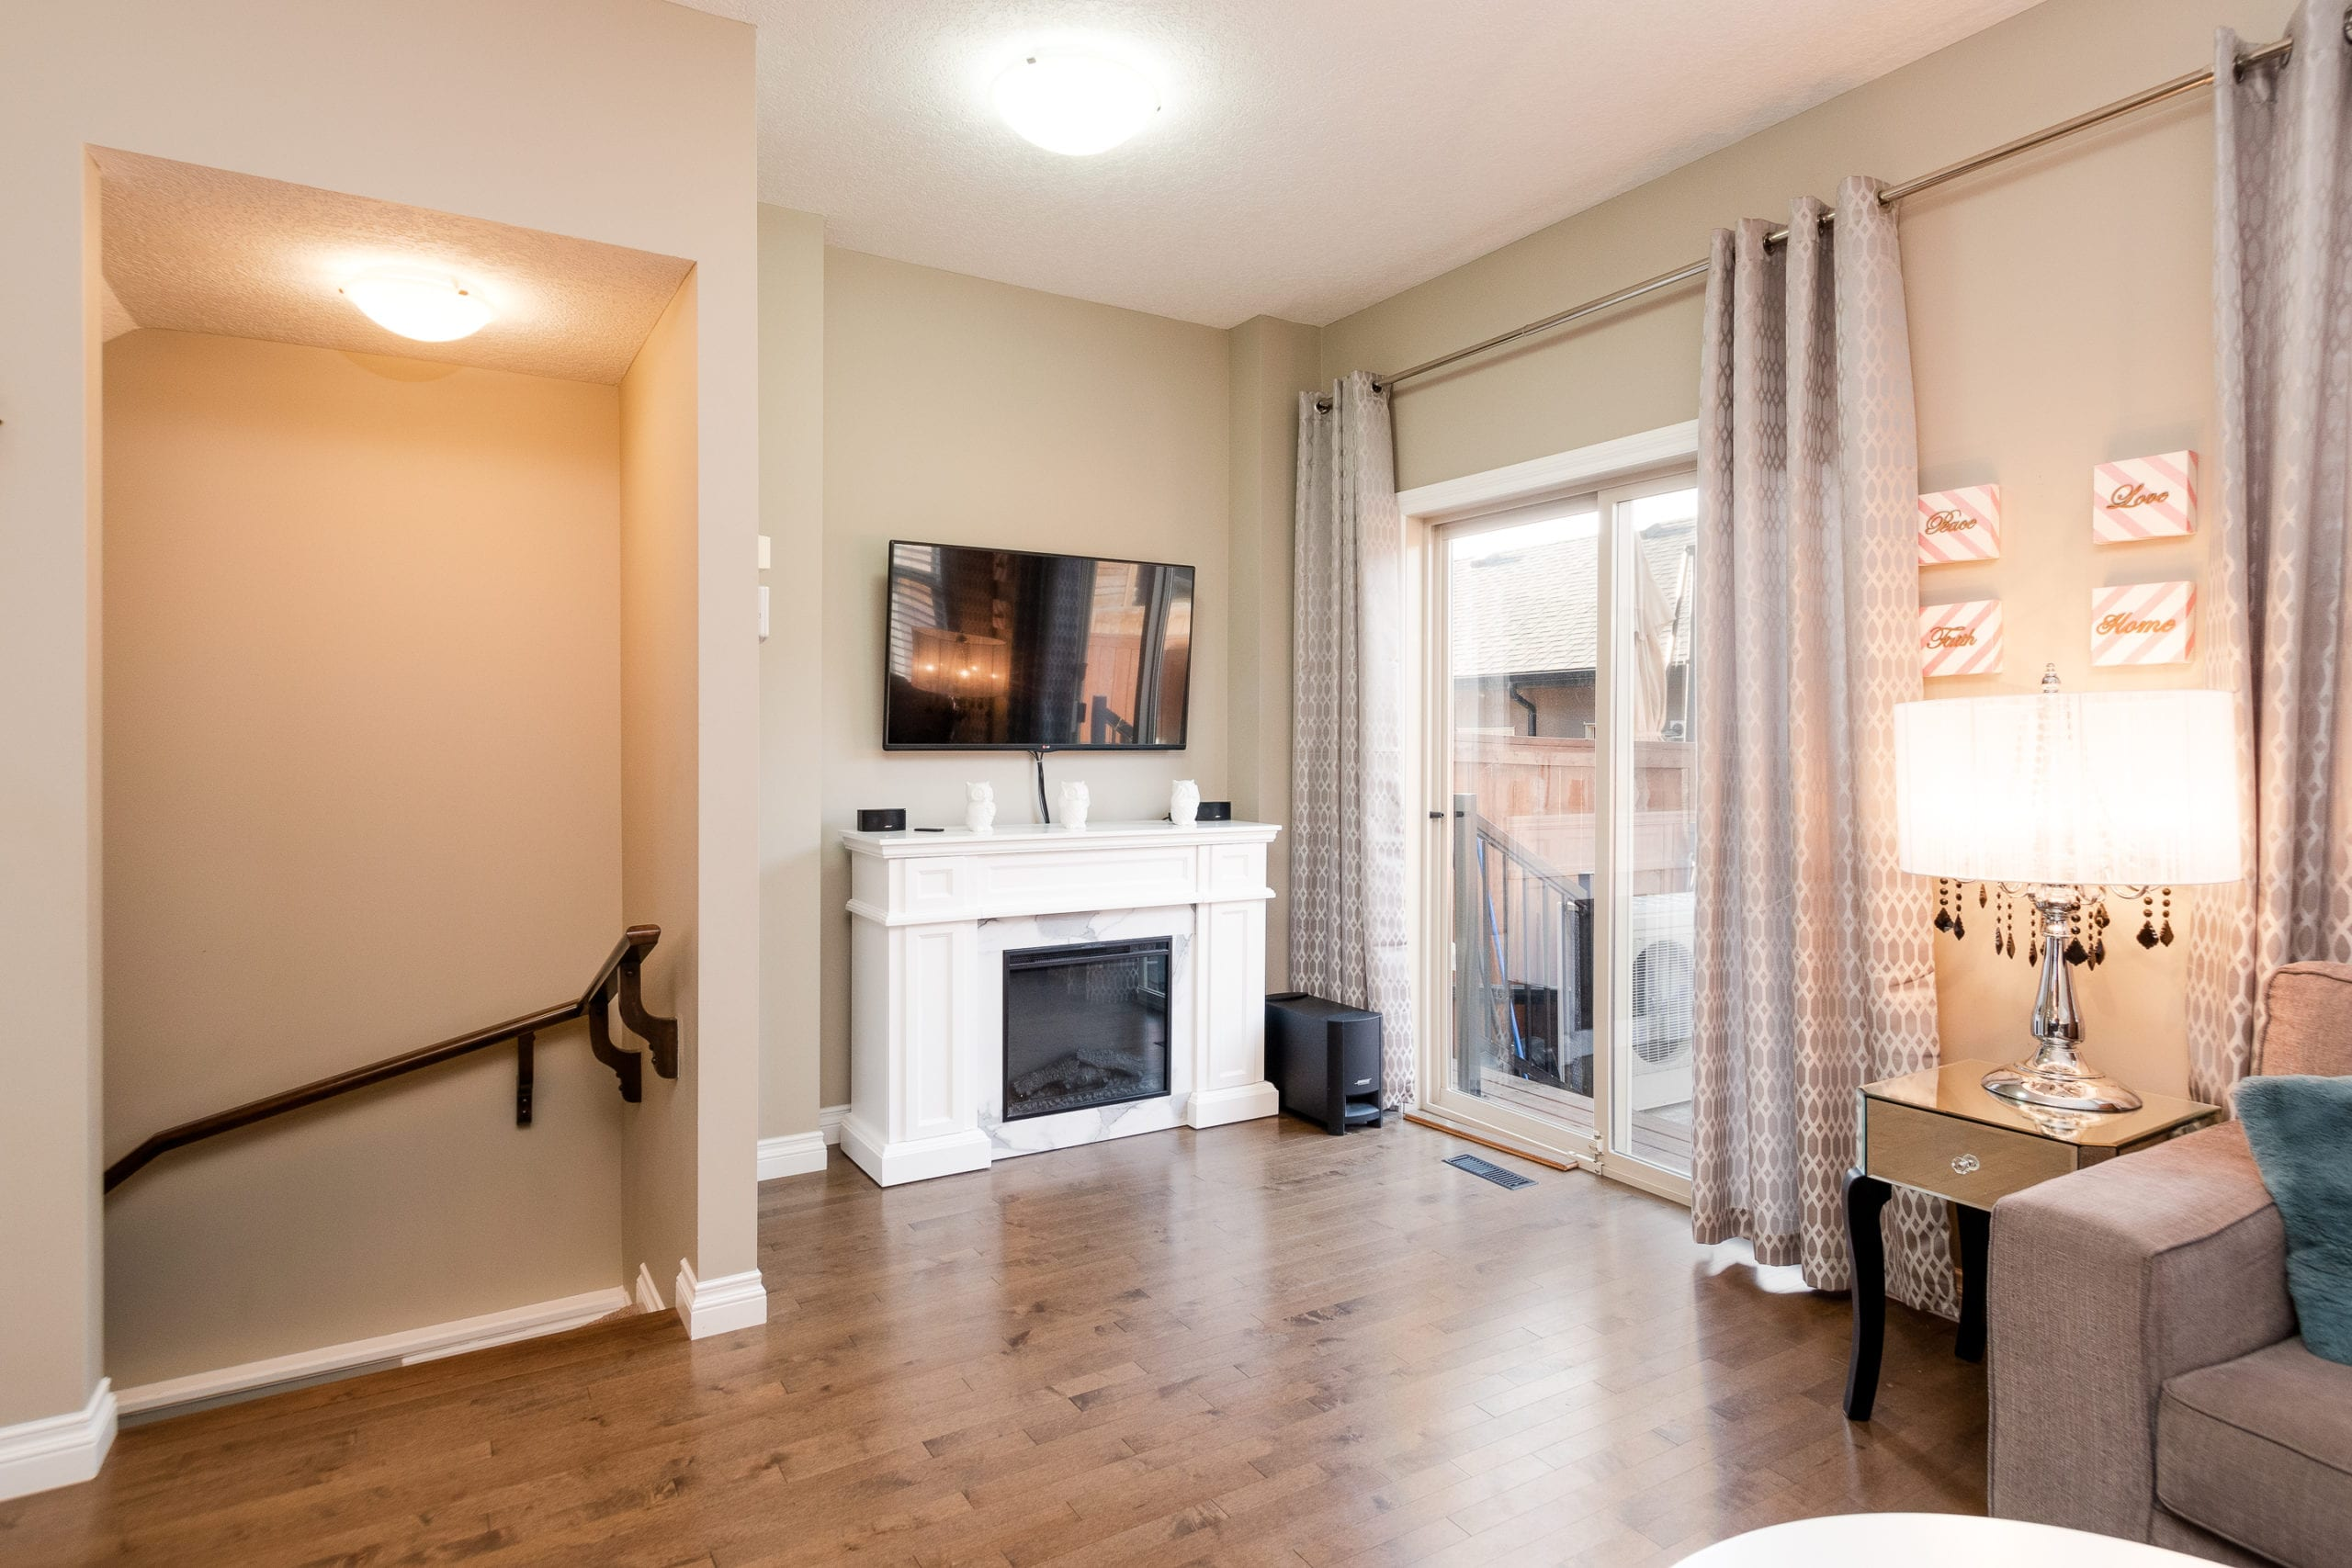 Hello Gorgeous - 61 Sage Meadows Terrace NW, Calgary AB - Tara Molina Real Estate (13 of 41)